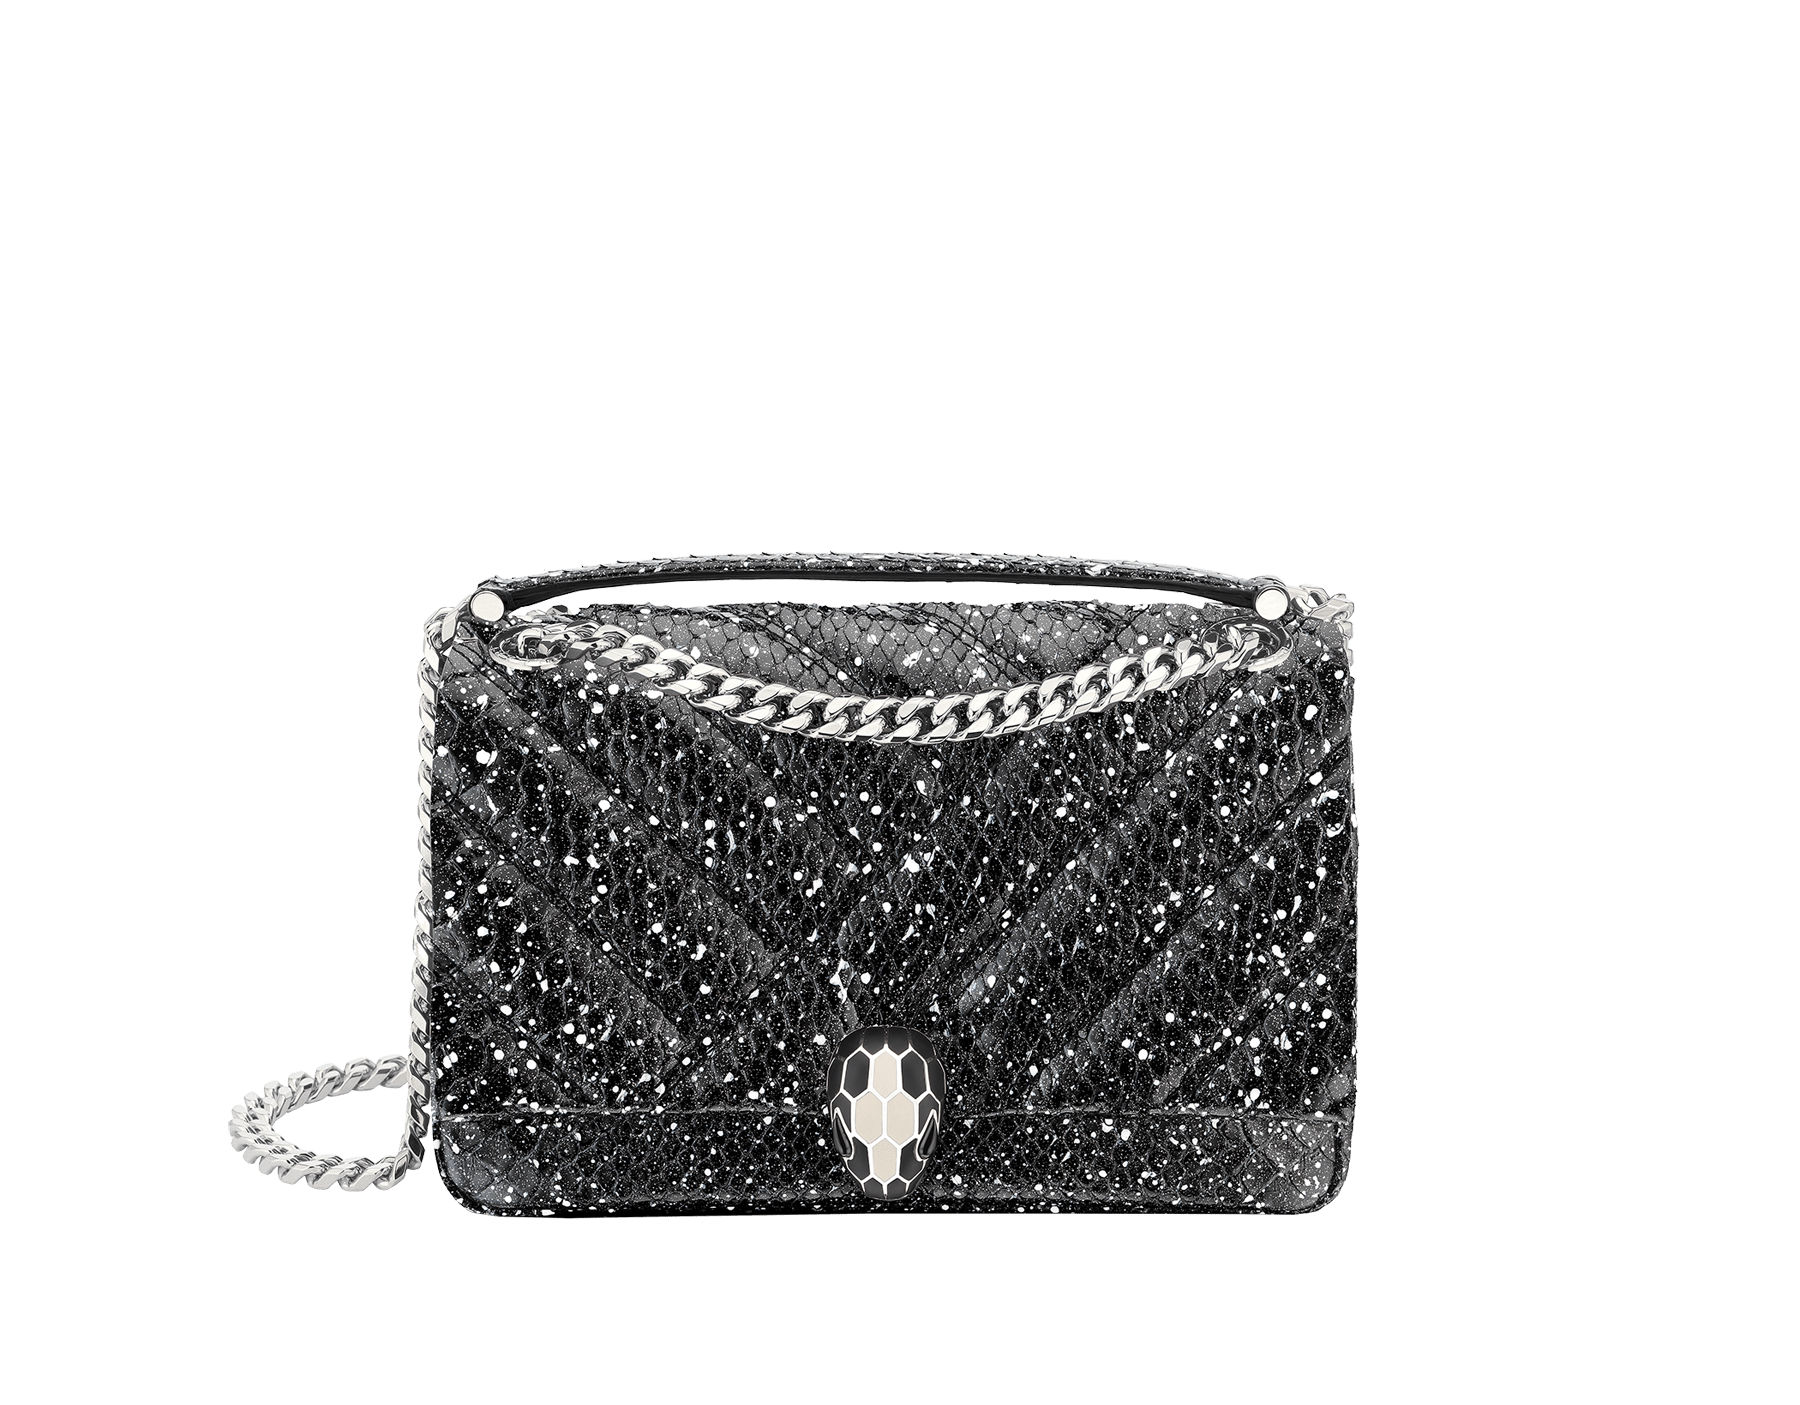 Serpenti Cabochon shoulder bag in soft matelassé black and white cosmic python skin with graphic motif. Snakehead closure in palladium plated brass decorated with matte black and white enamel, and black onyx eyes. 288621 image 1